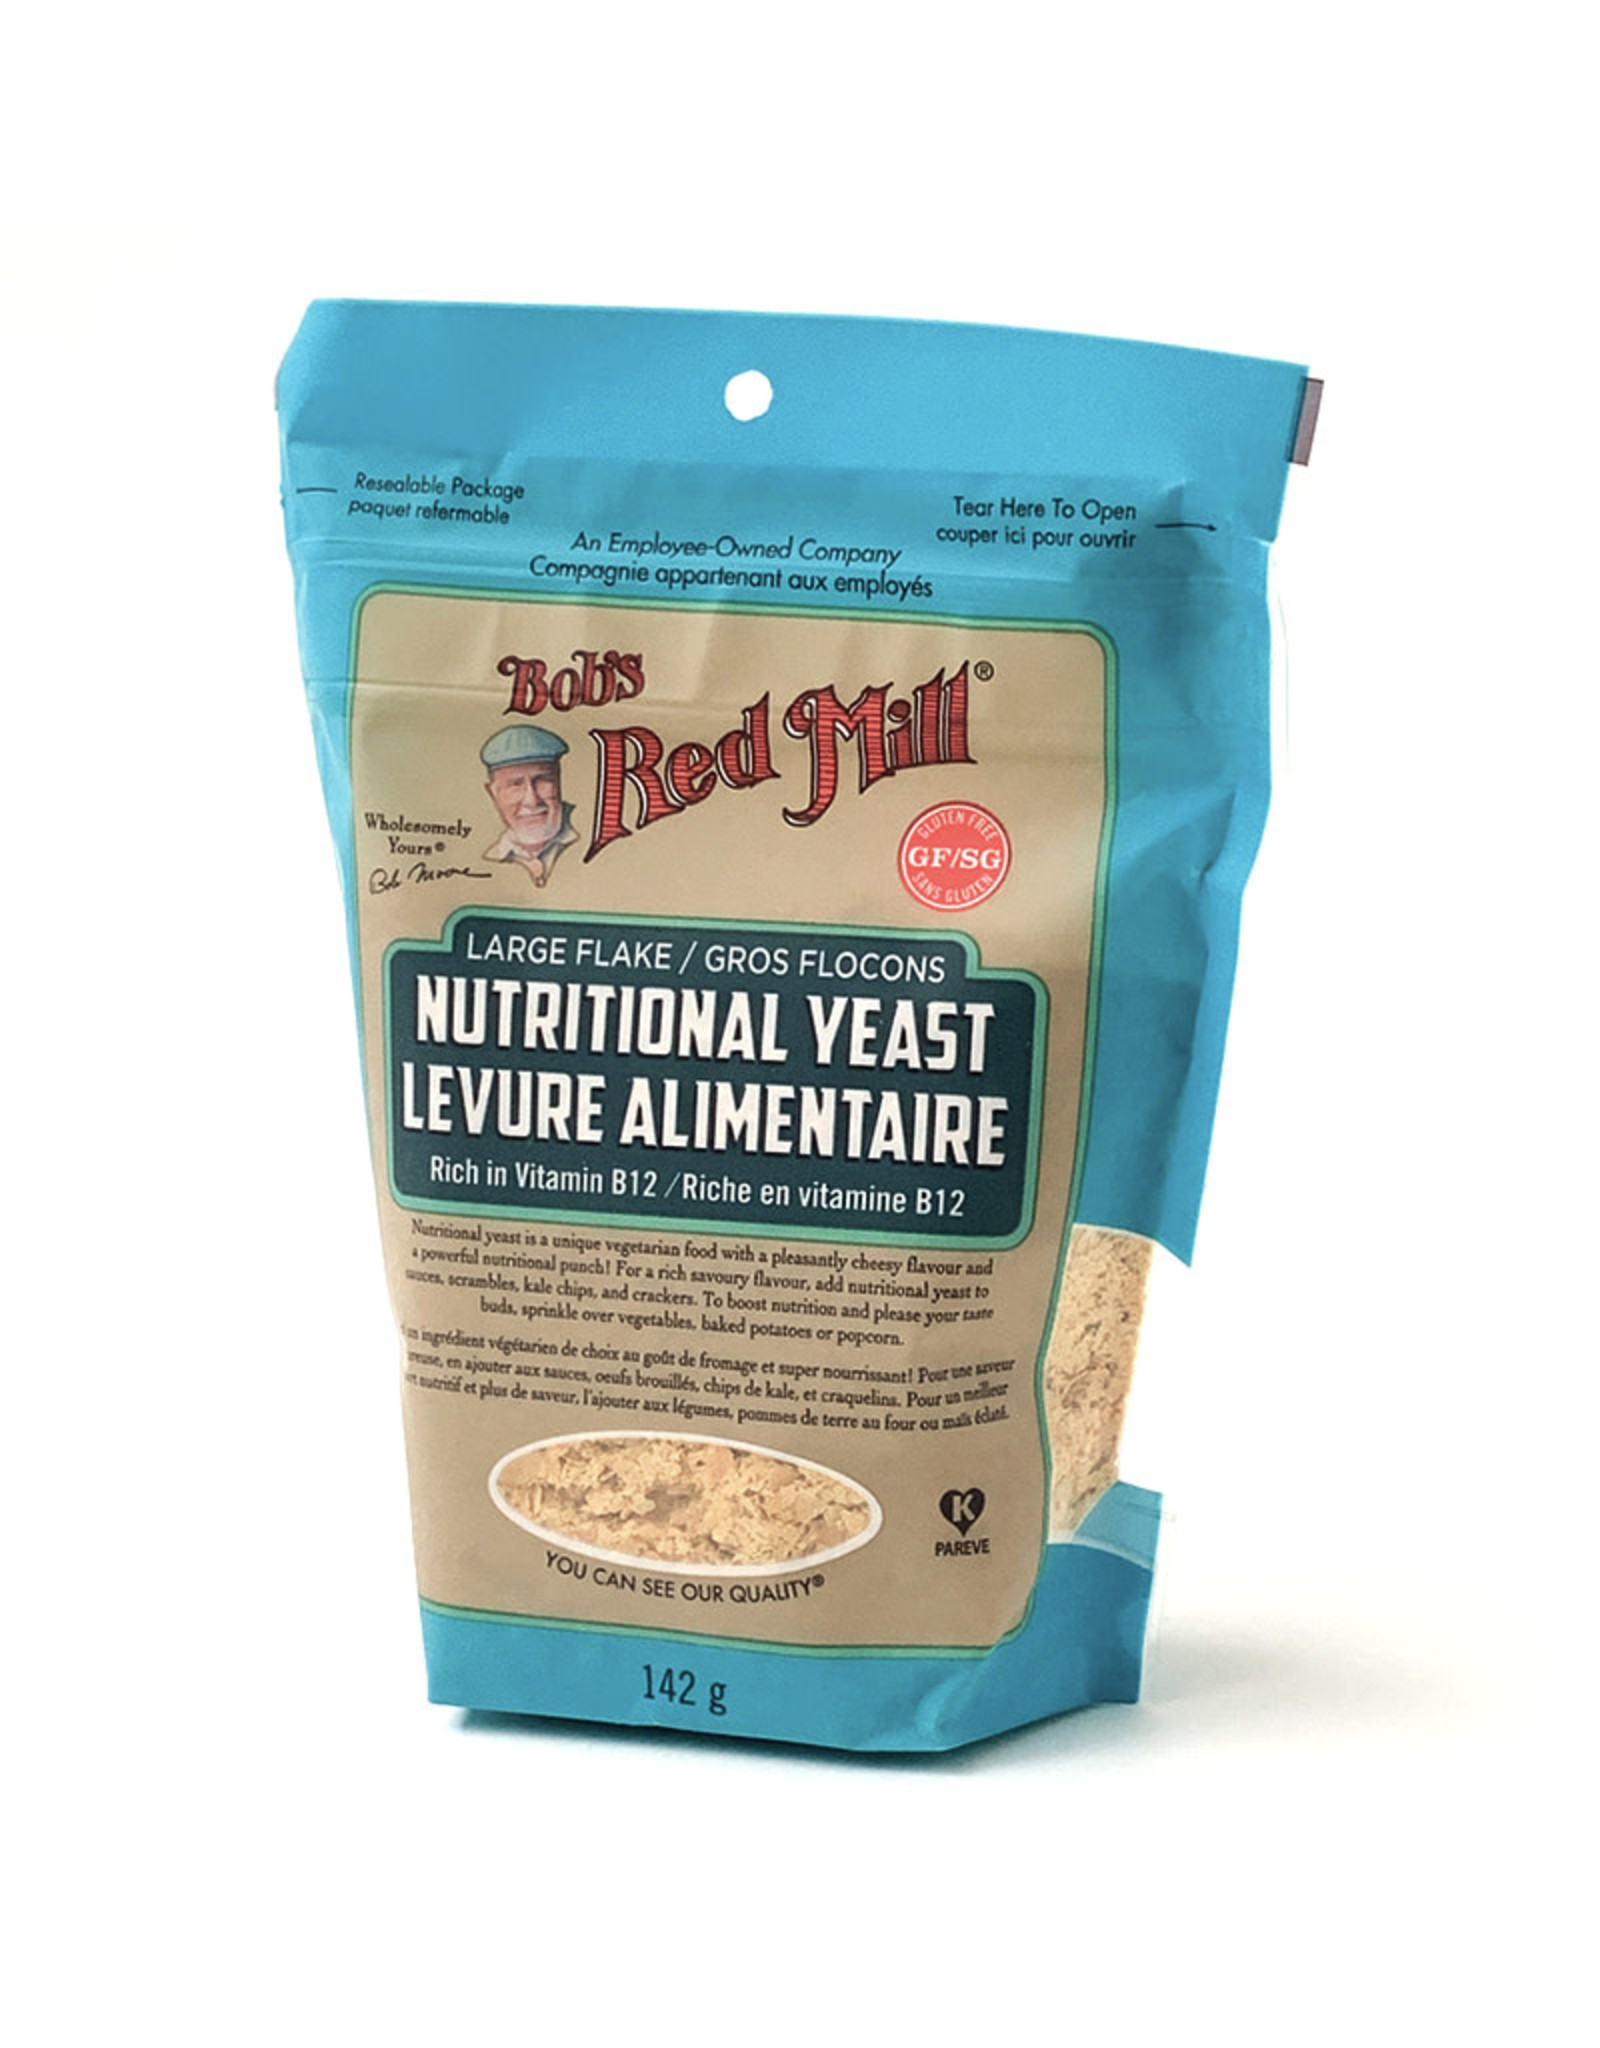 Bobs Red Mill Bobs Red Mill - Nutritional Yeast, (142g)